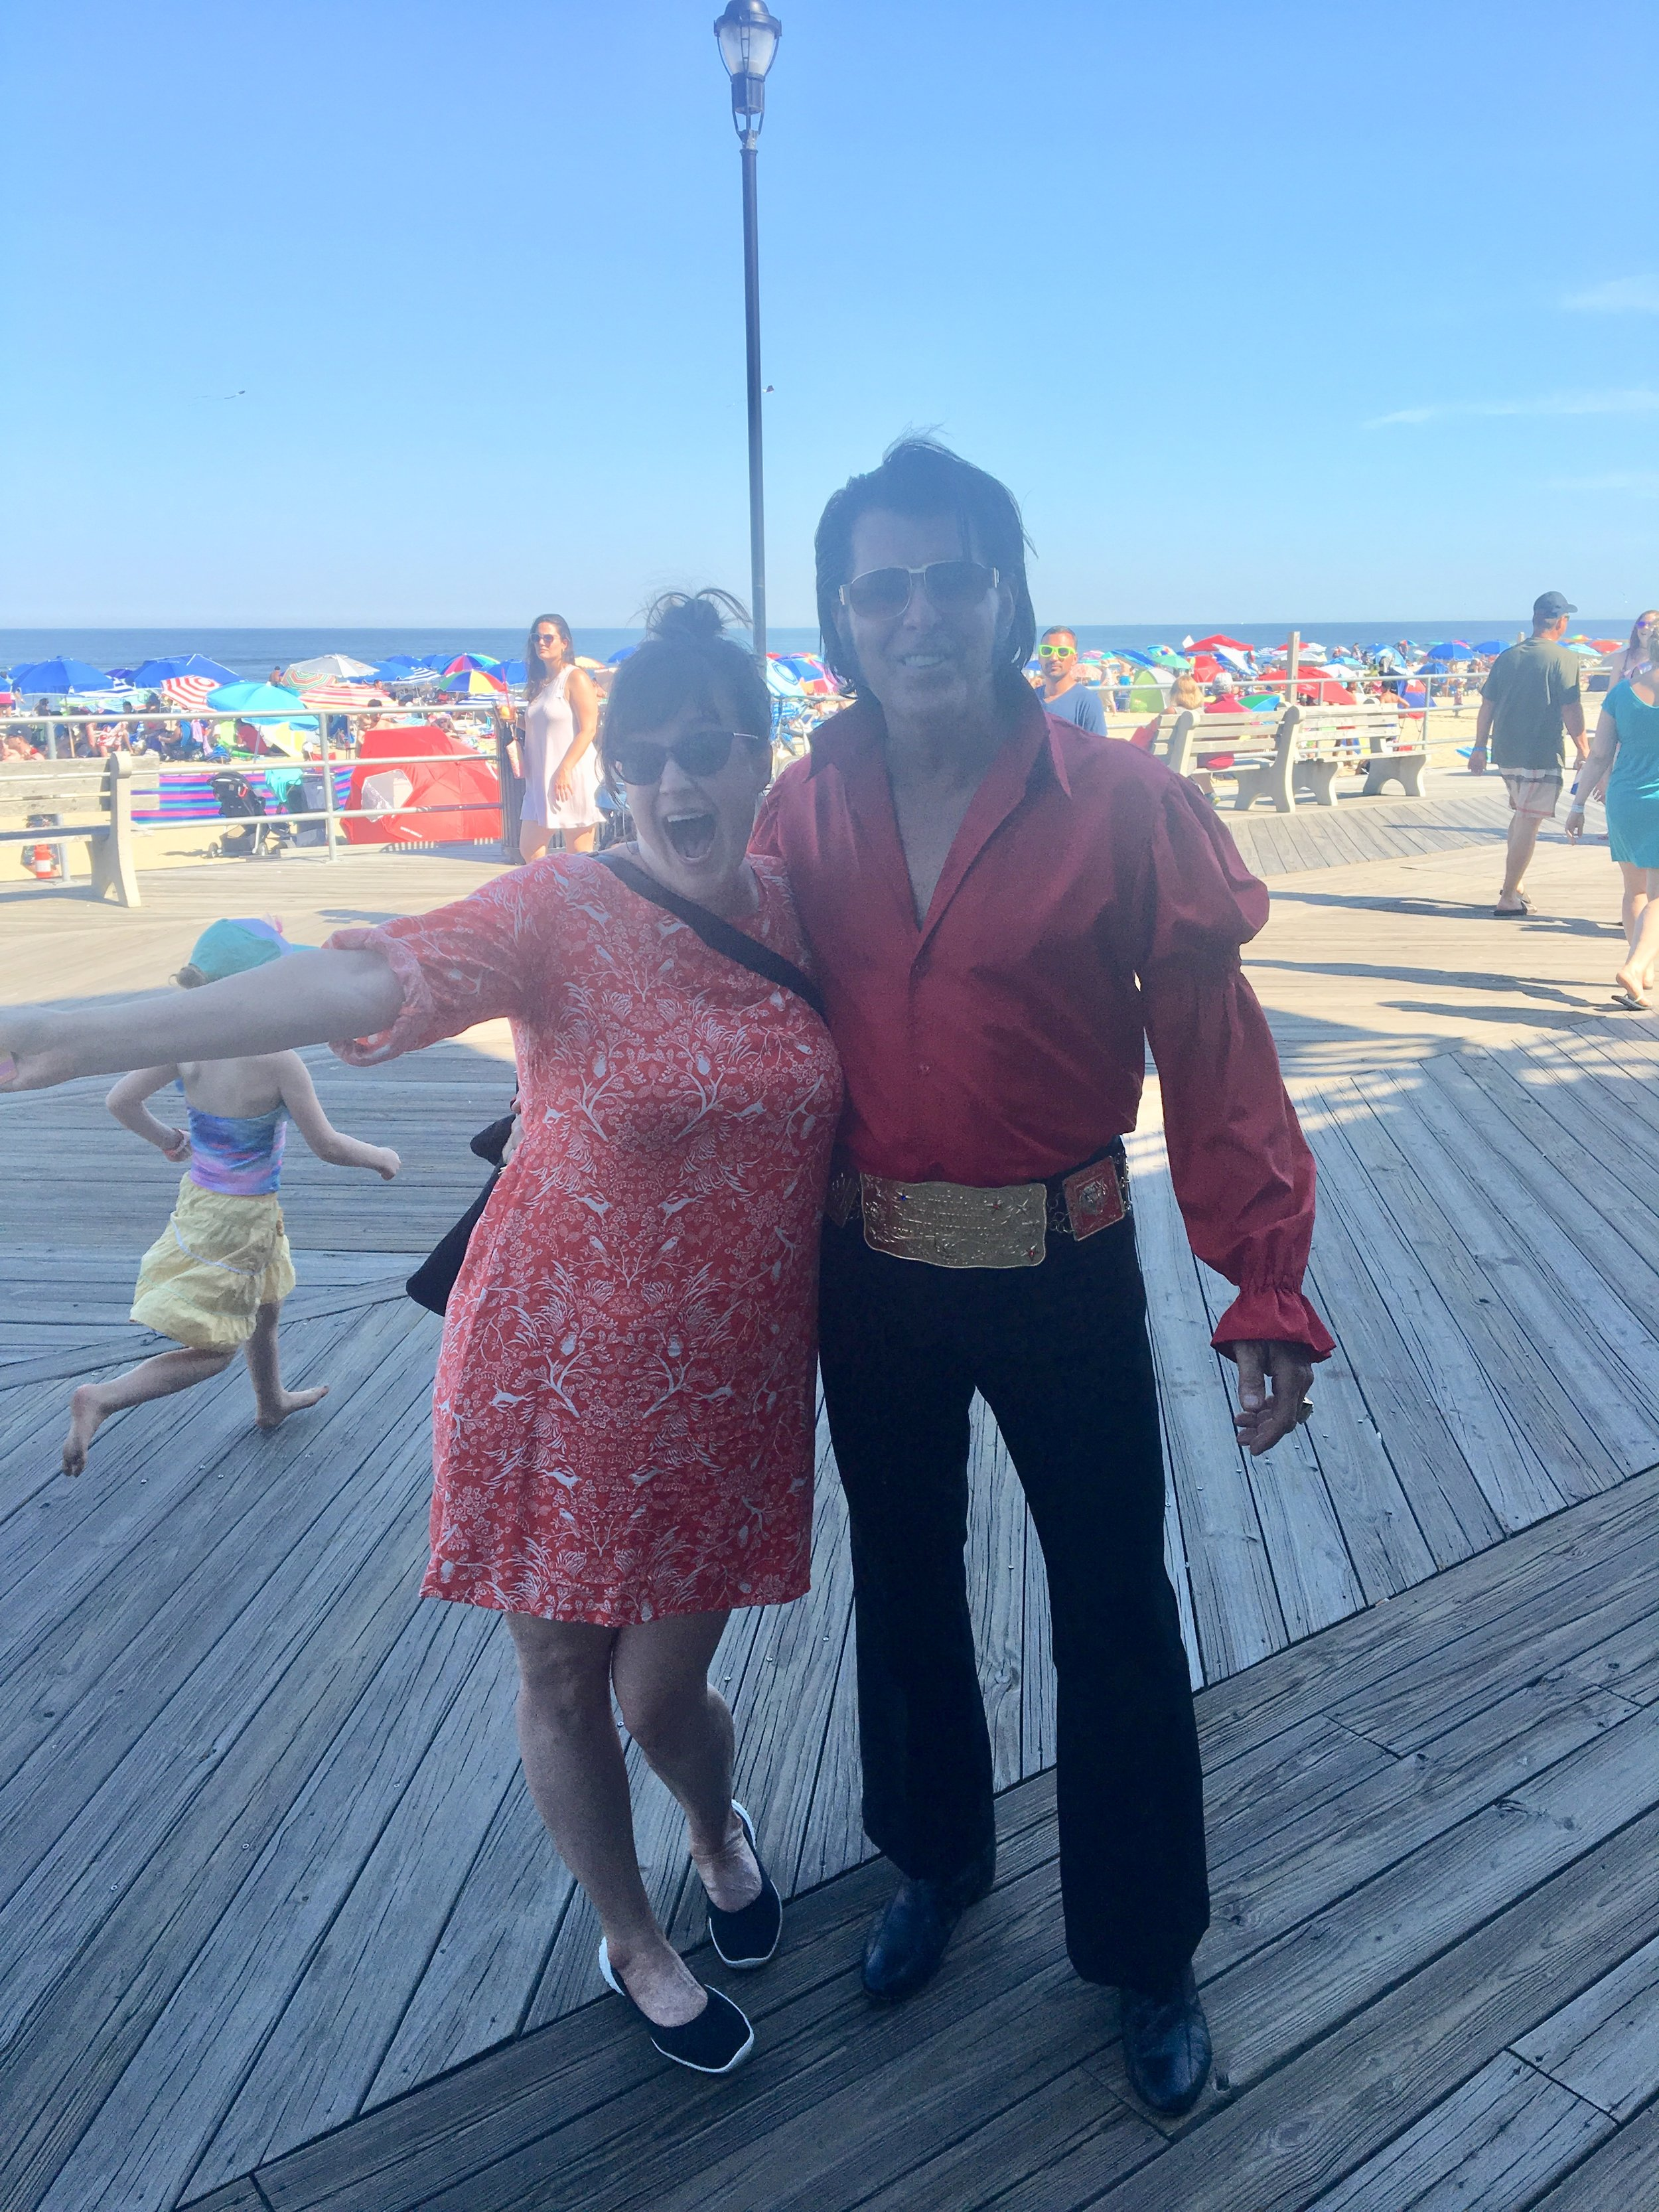 What it looked like when I met Richie in Asbury Park.  June 2018